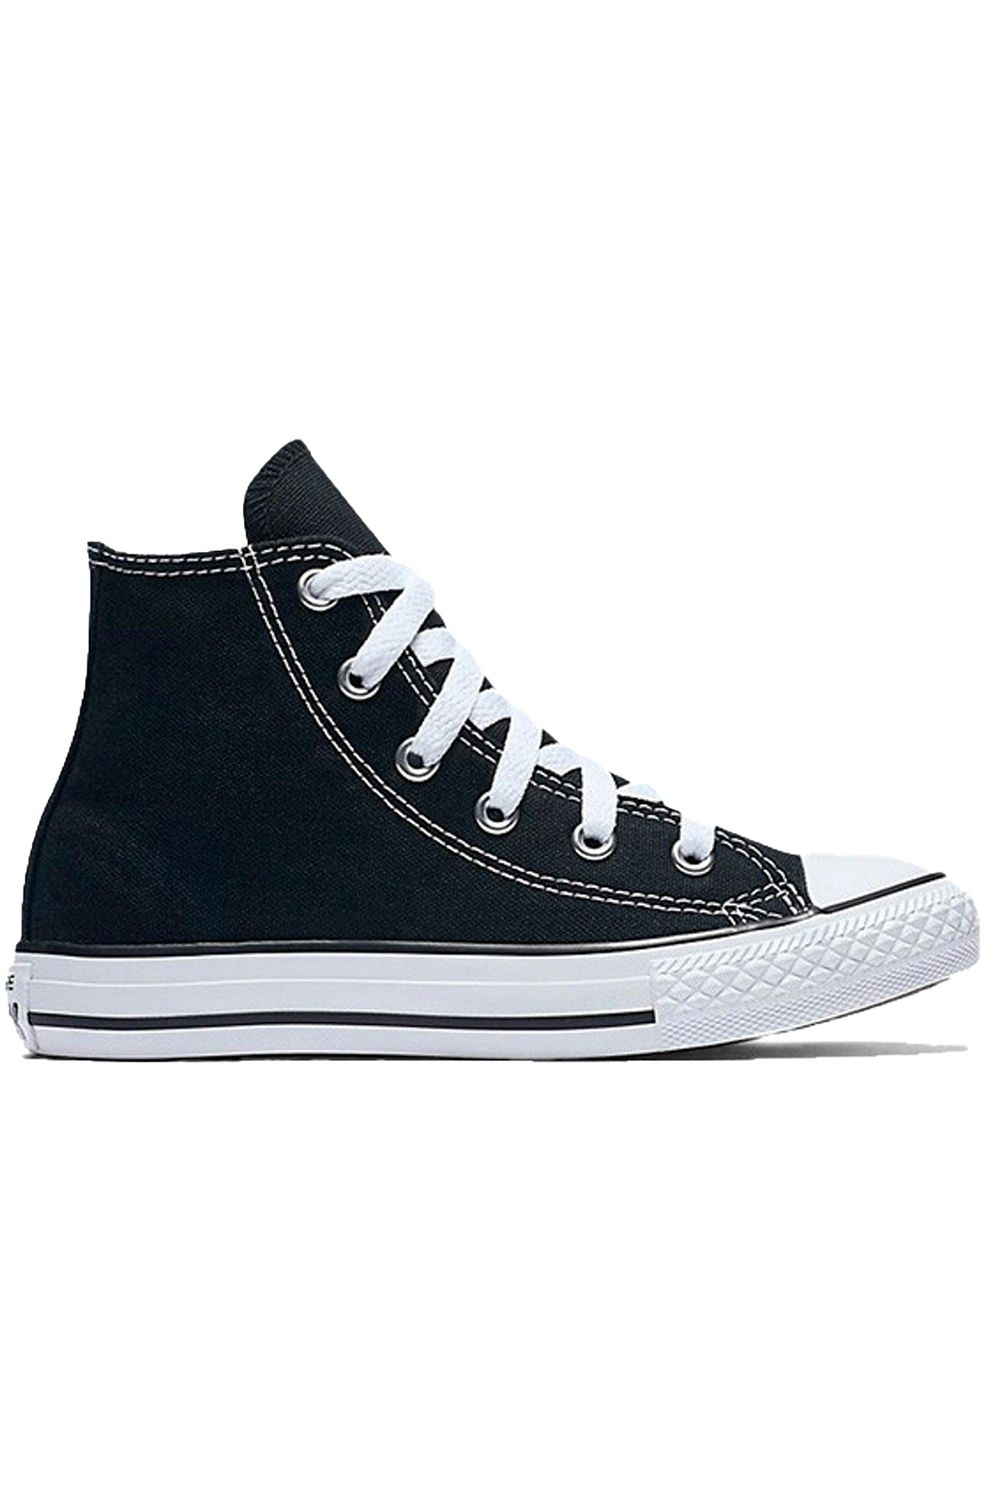 Tenis Converse CHUCK TAYLOR ALL STAR HI Black